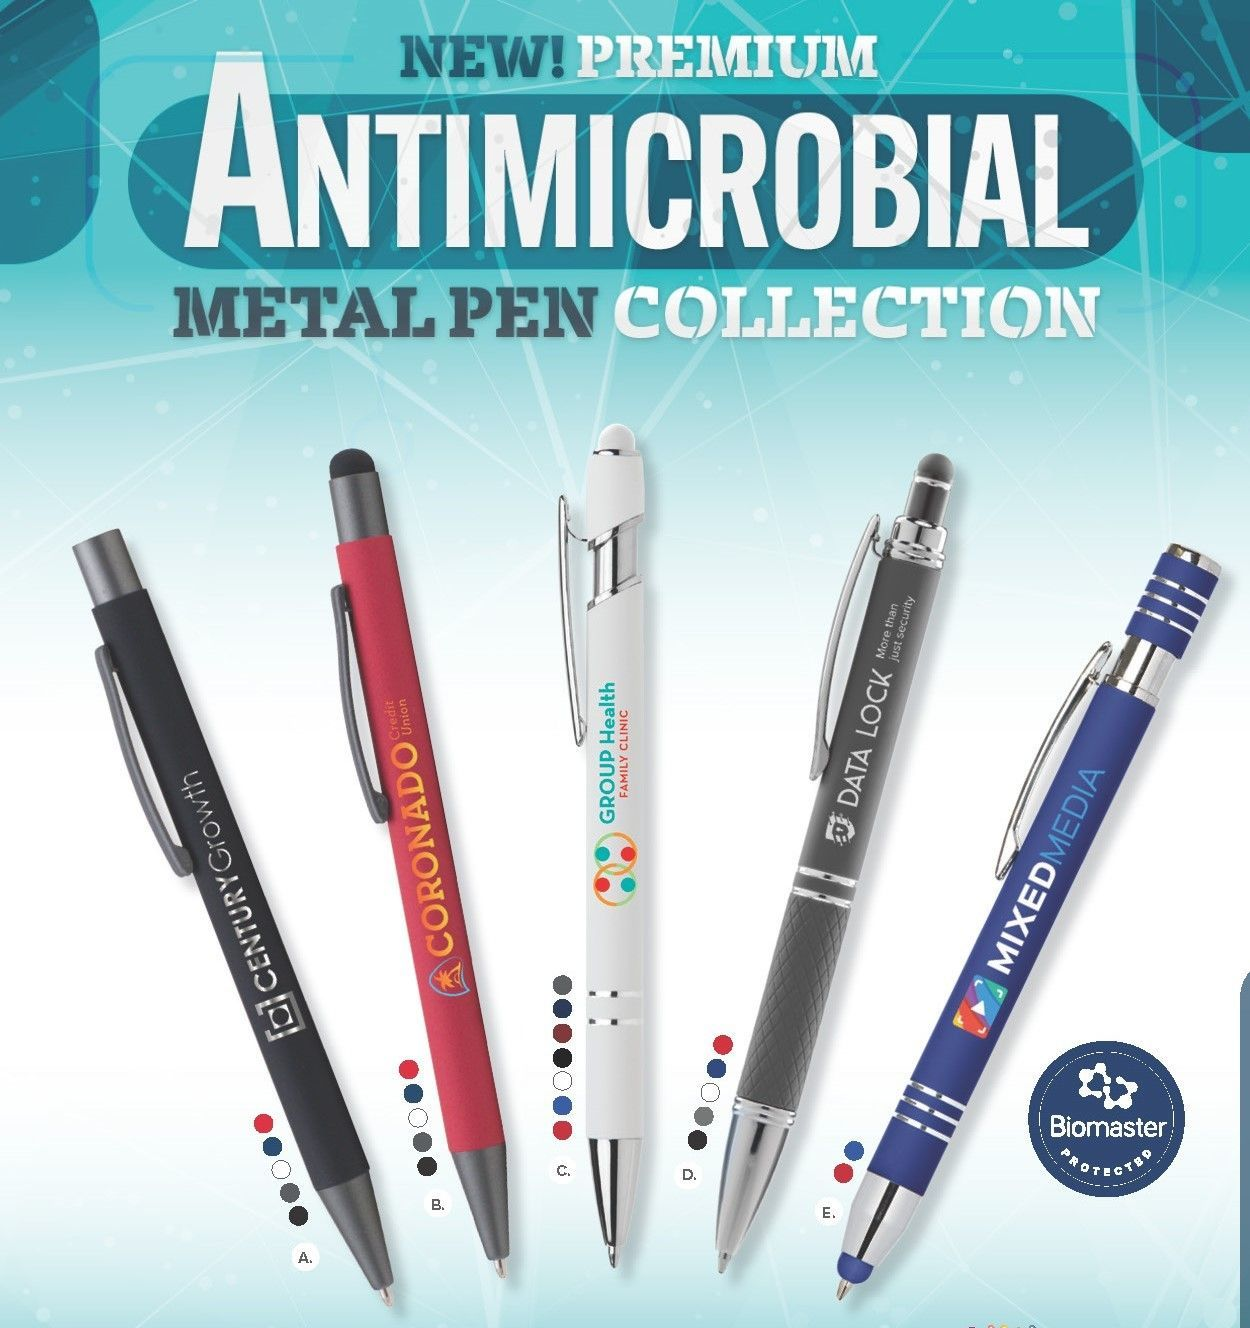 Antimicrobial Metal Pen Collection